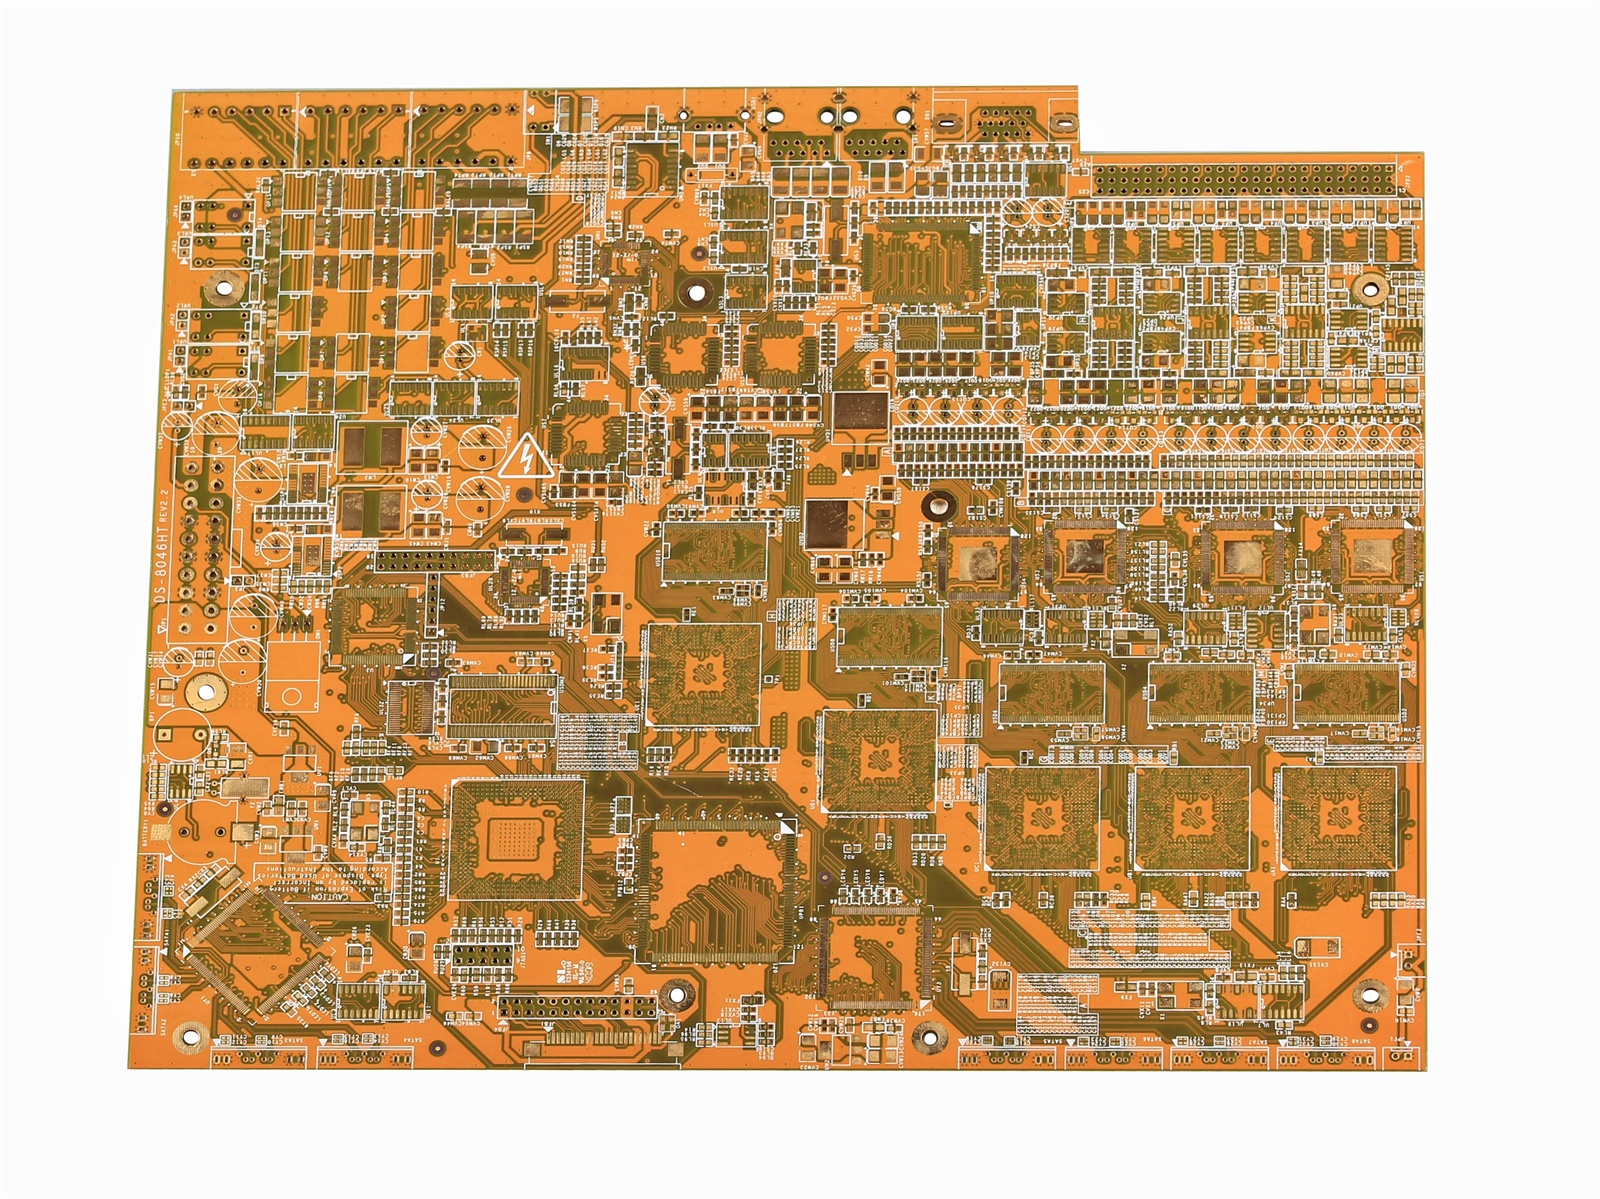 Mother board of industrial computer